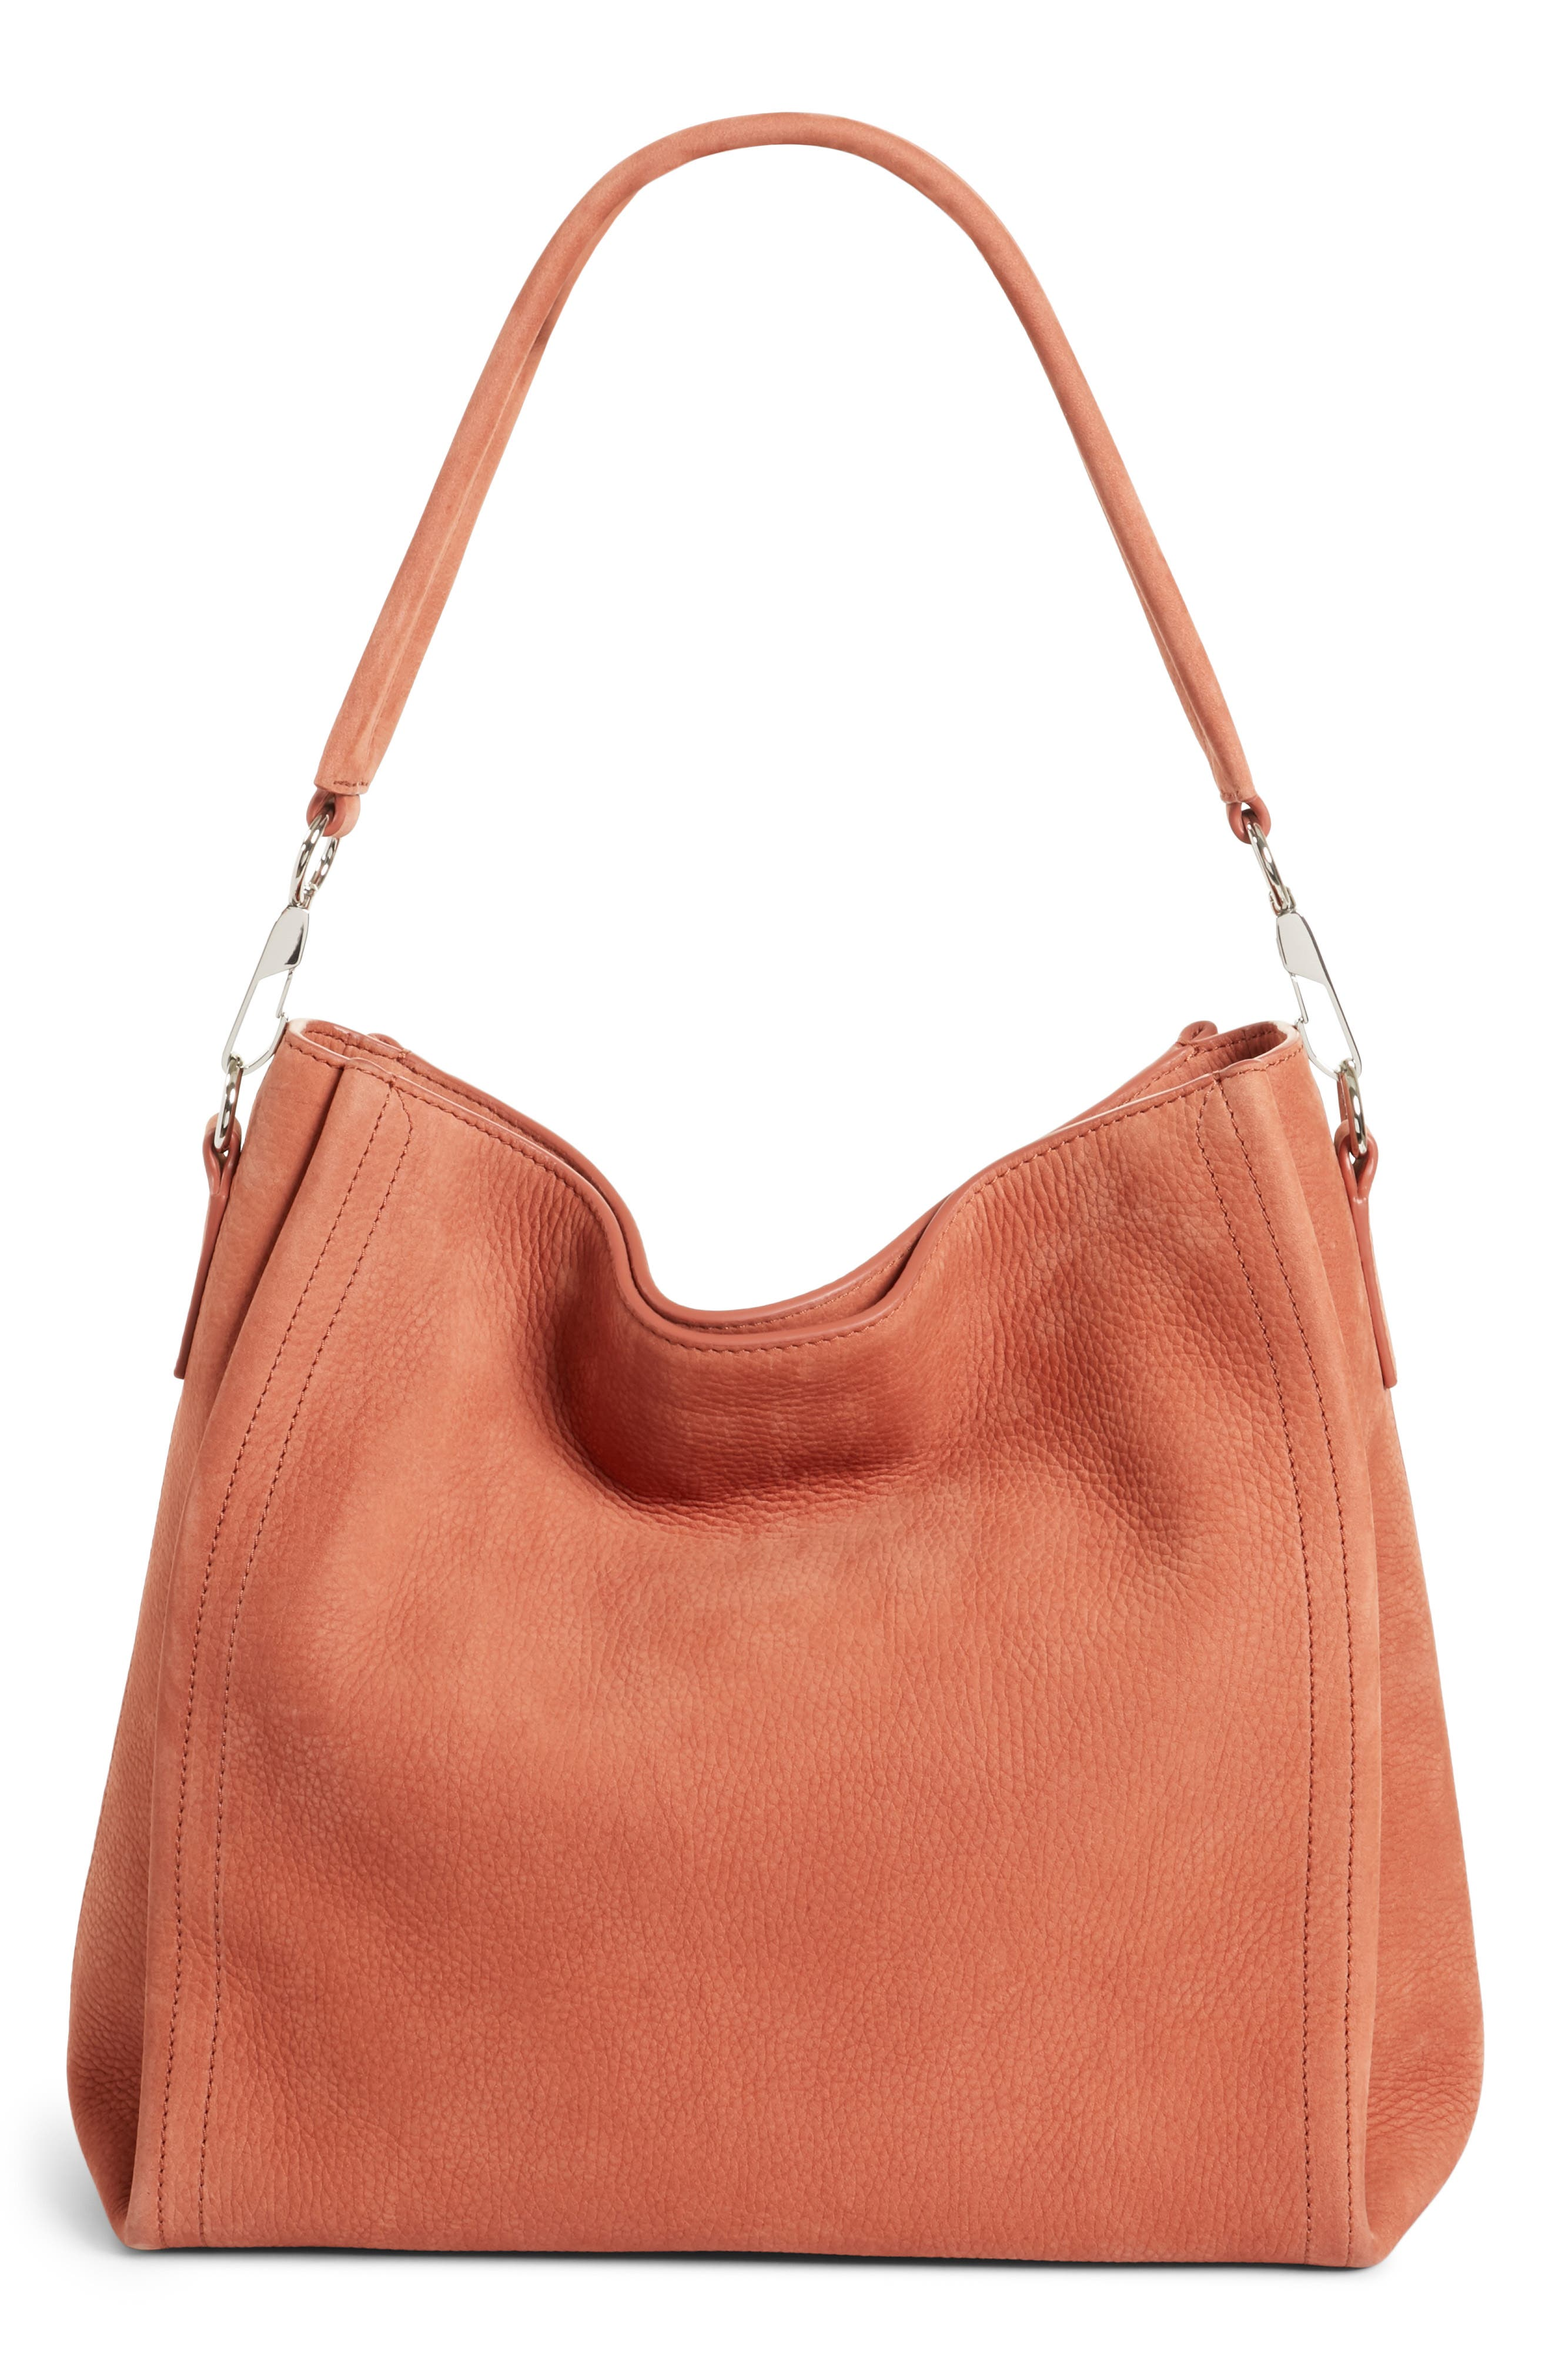 Darcy Pebbled Leather Hobo,                             Alternate thumbnail 3, color,                             200